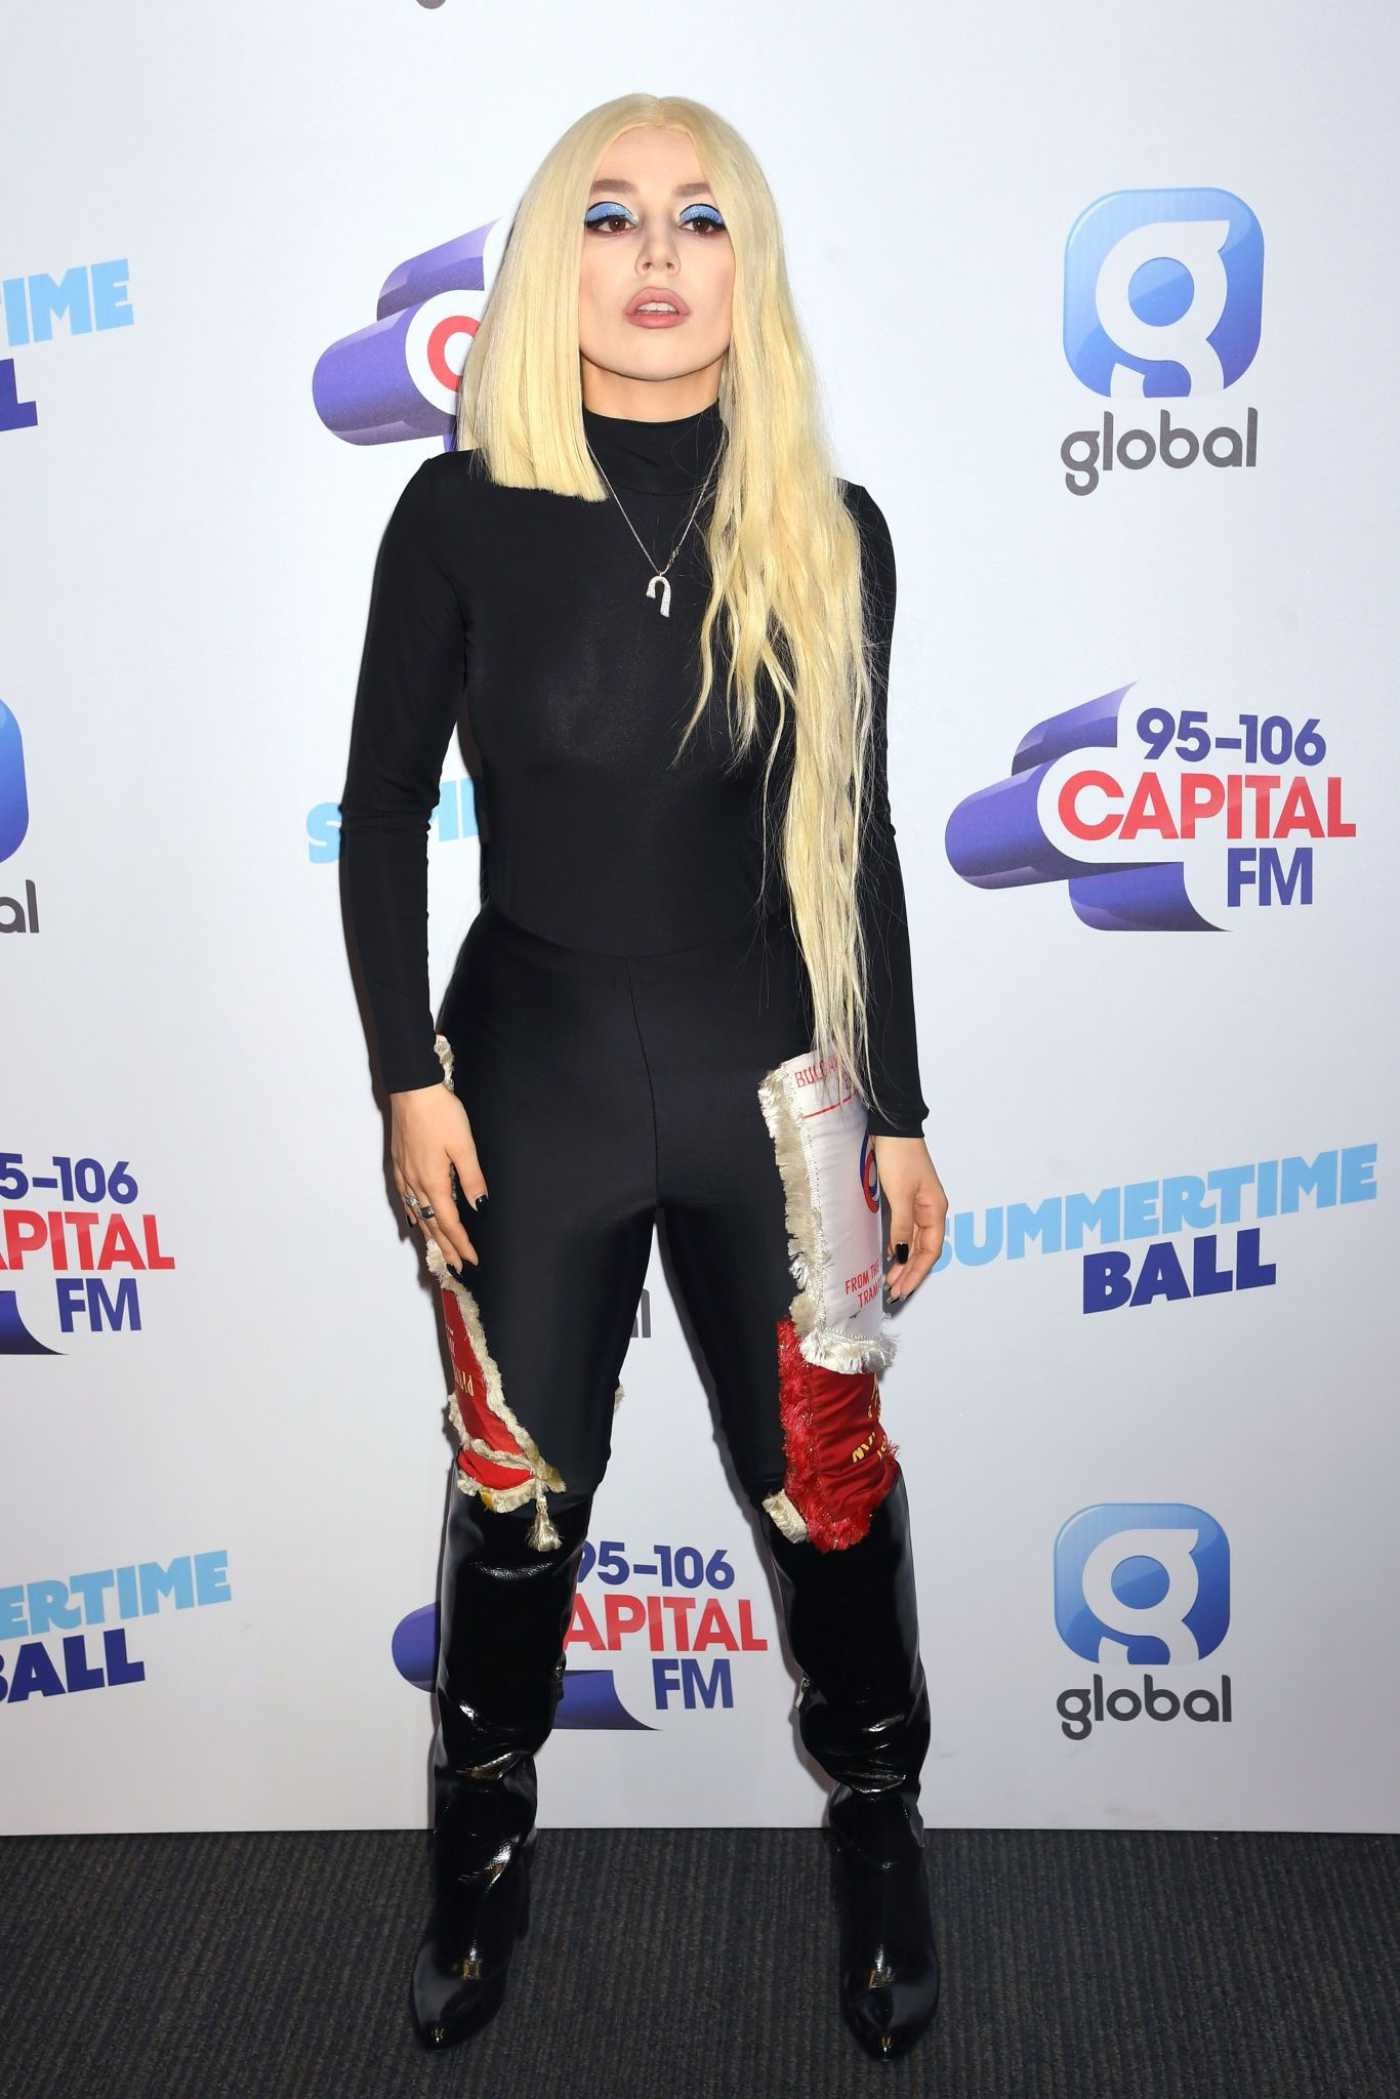 Ava Max Attends 2019 Capital FM Summertime Ball in London 06/08/2019